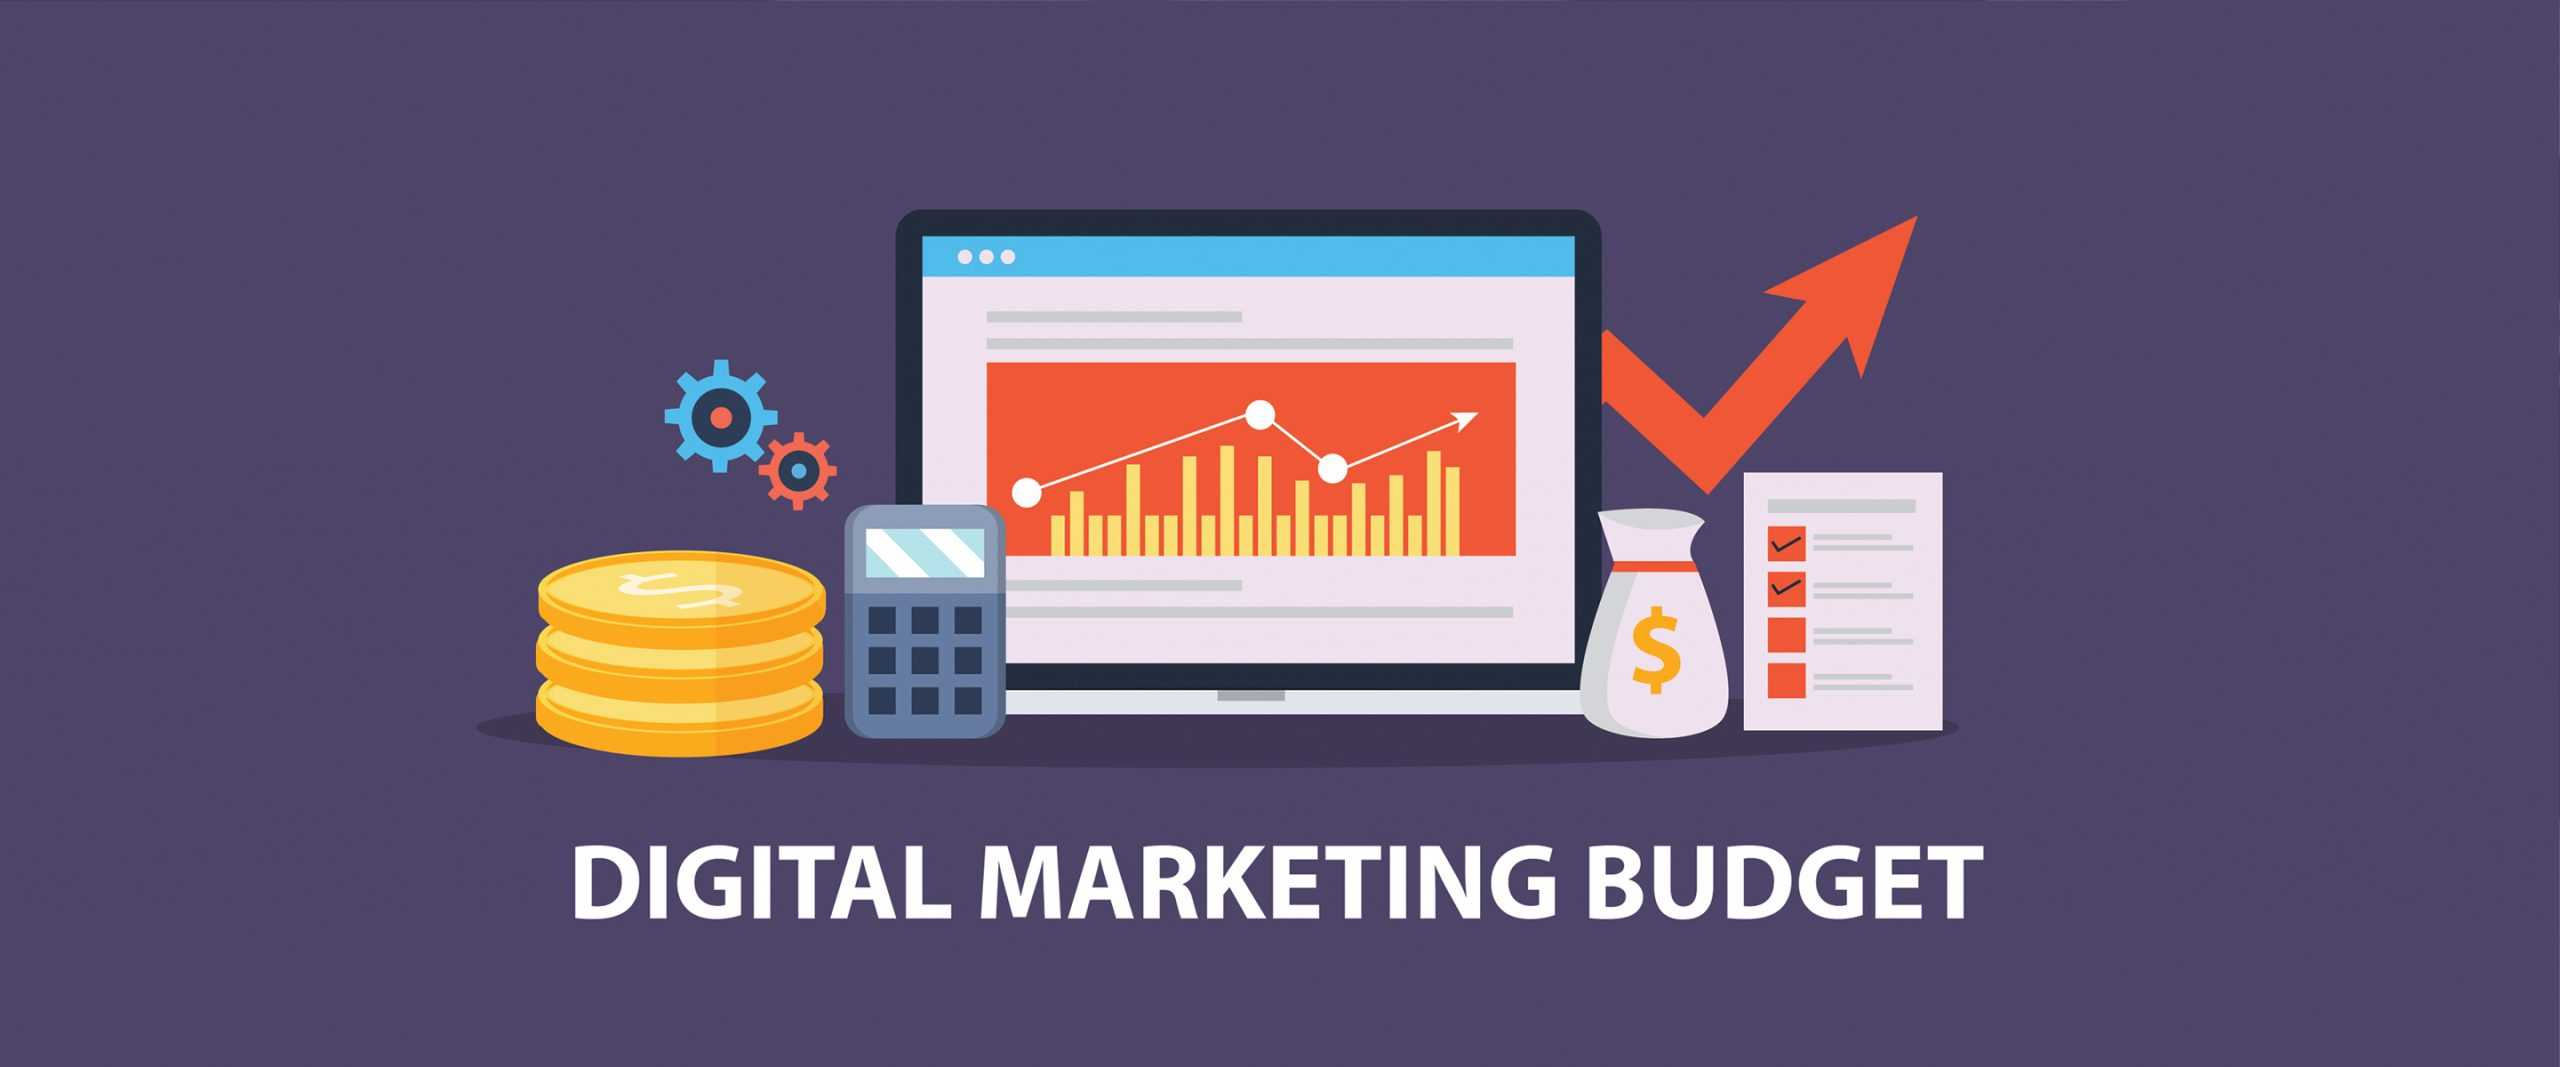 The importance of adapting your marketing budget